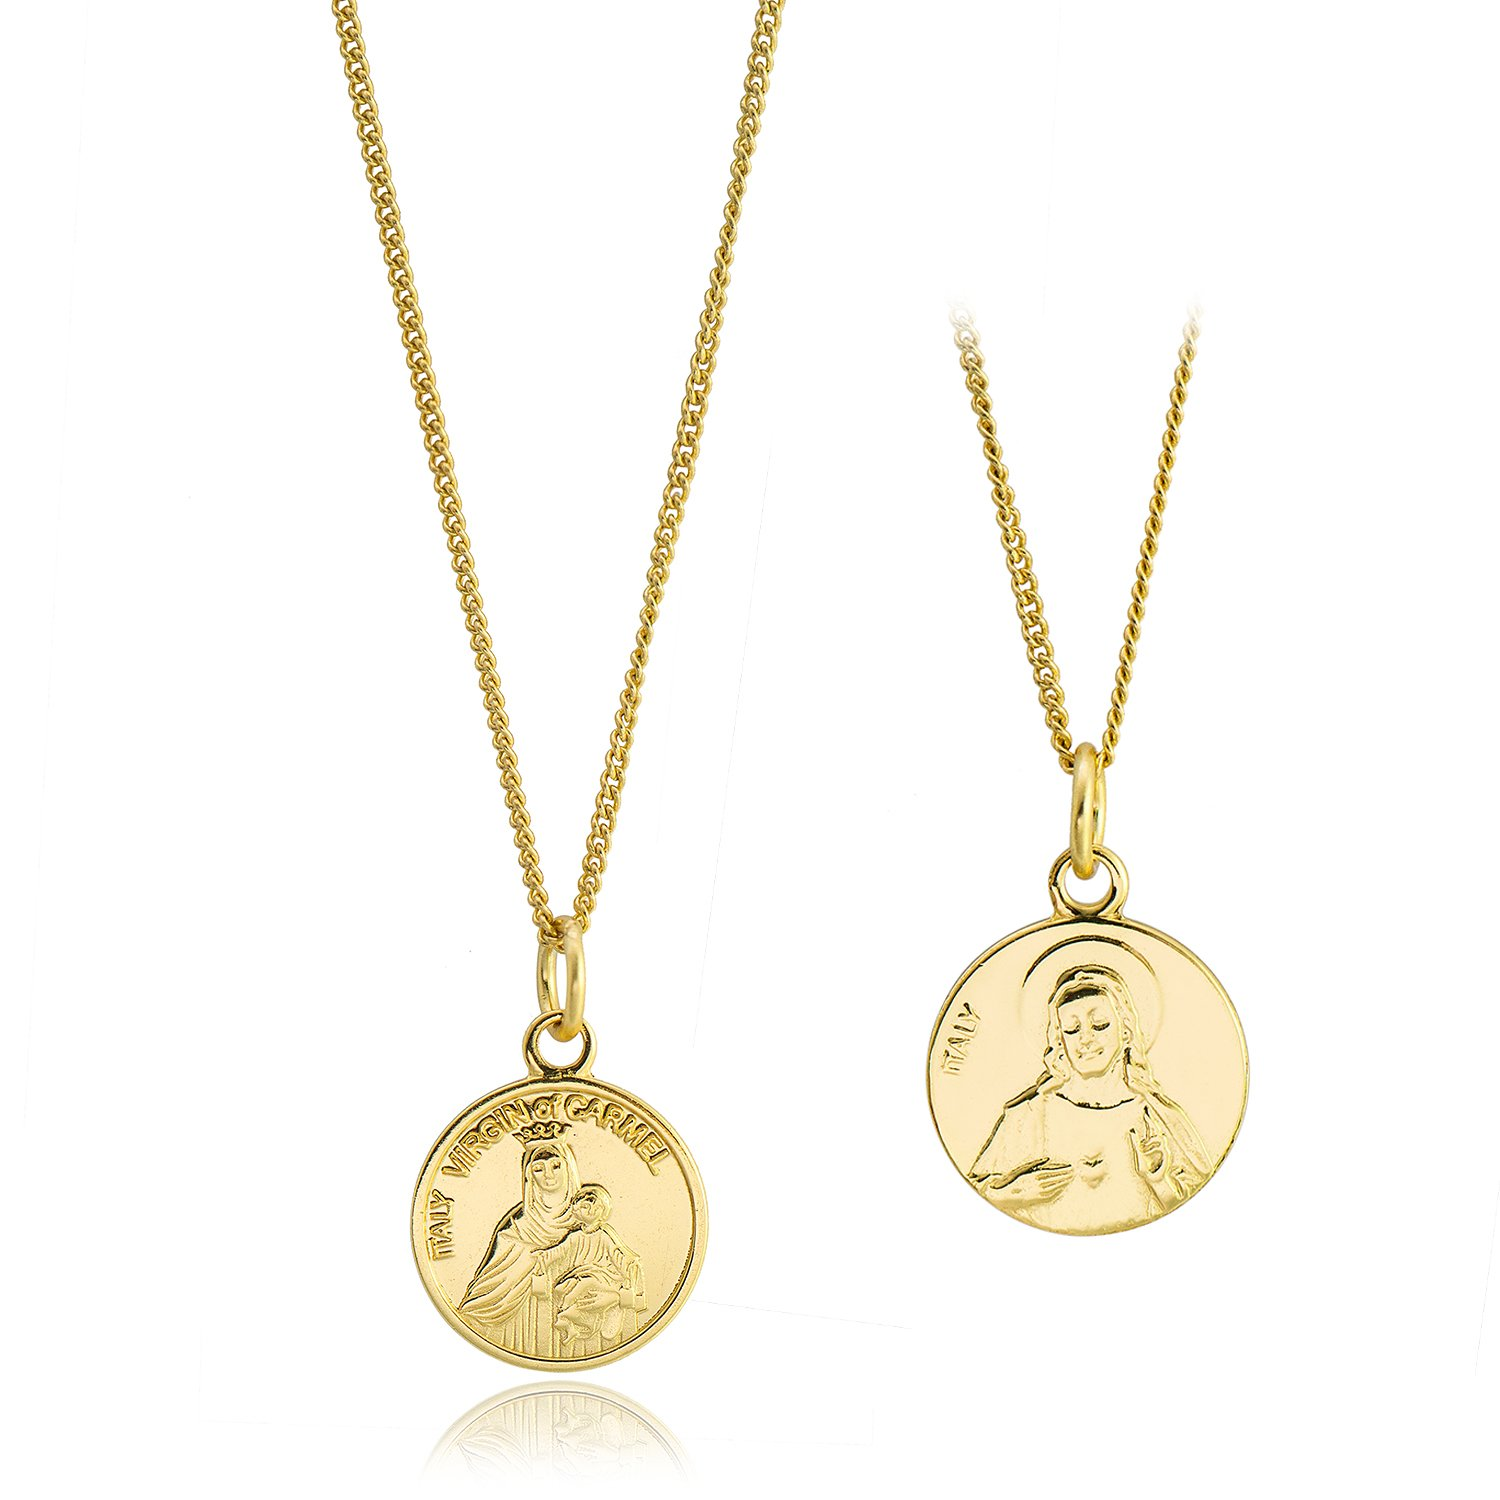 CISHOP Maryam Round Disc Pendant Necklace 18K Gold Plating Sterling Silver Collected Coin Necklace CIS-NL18-COIN03